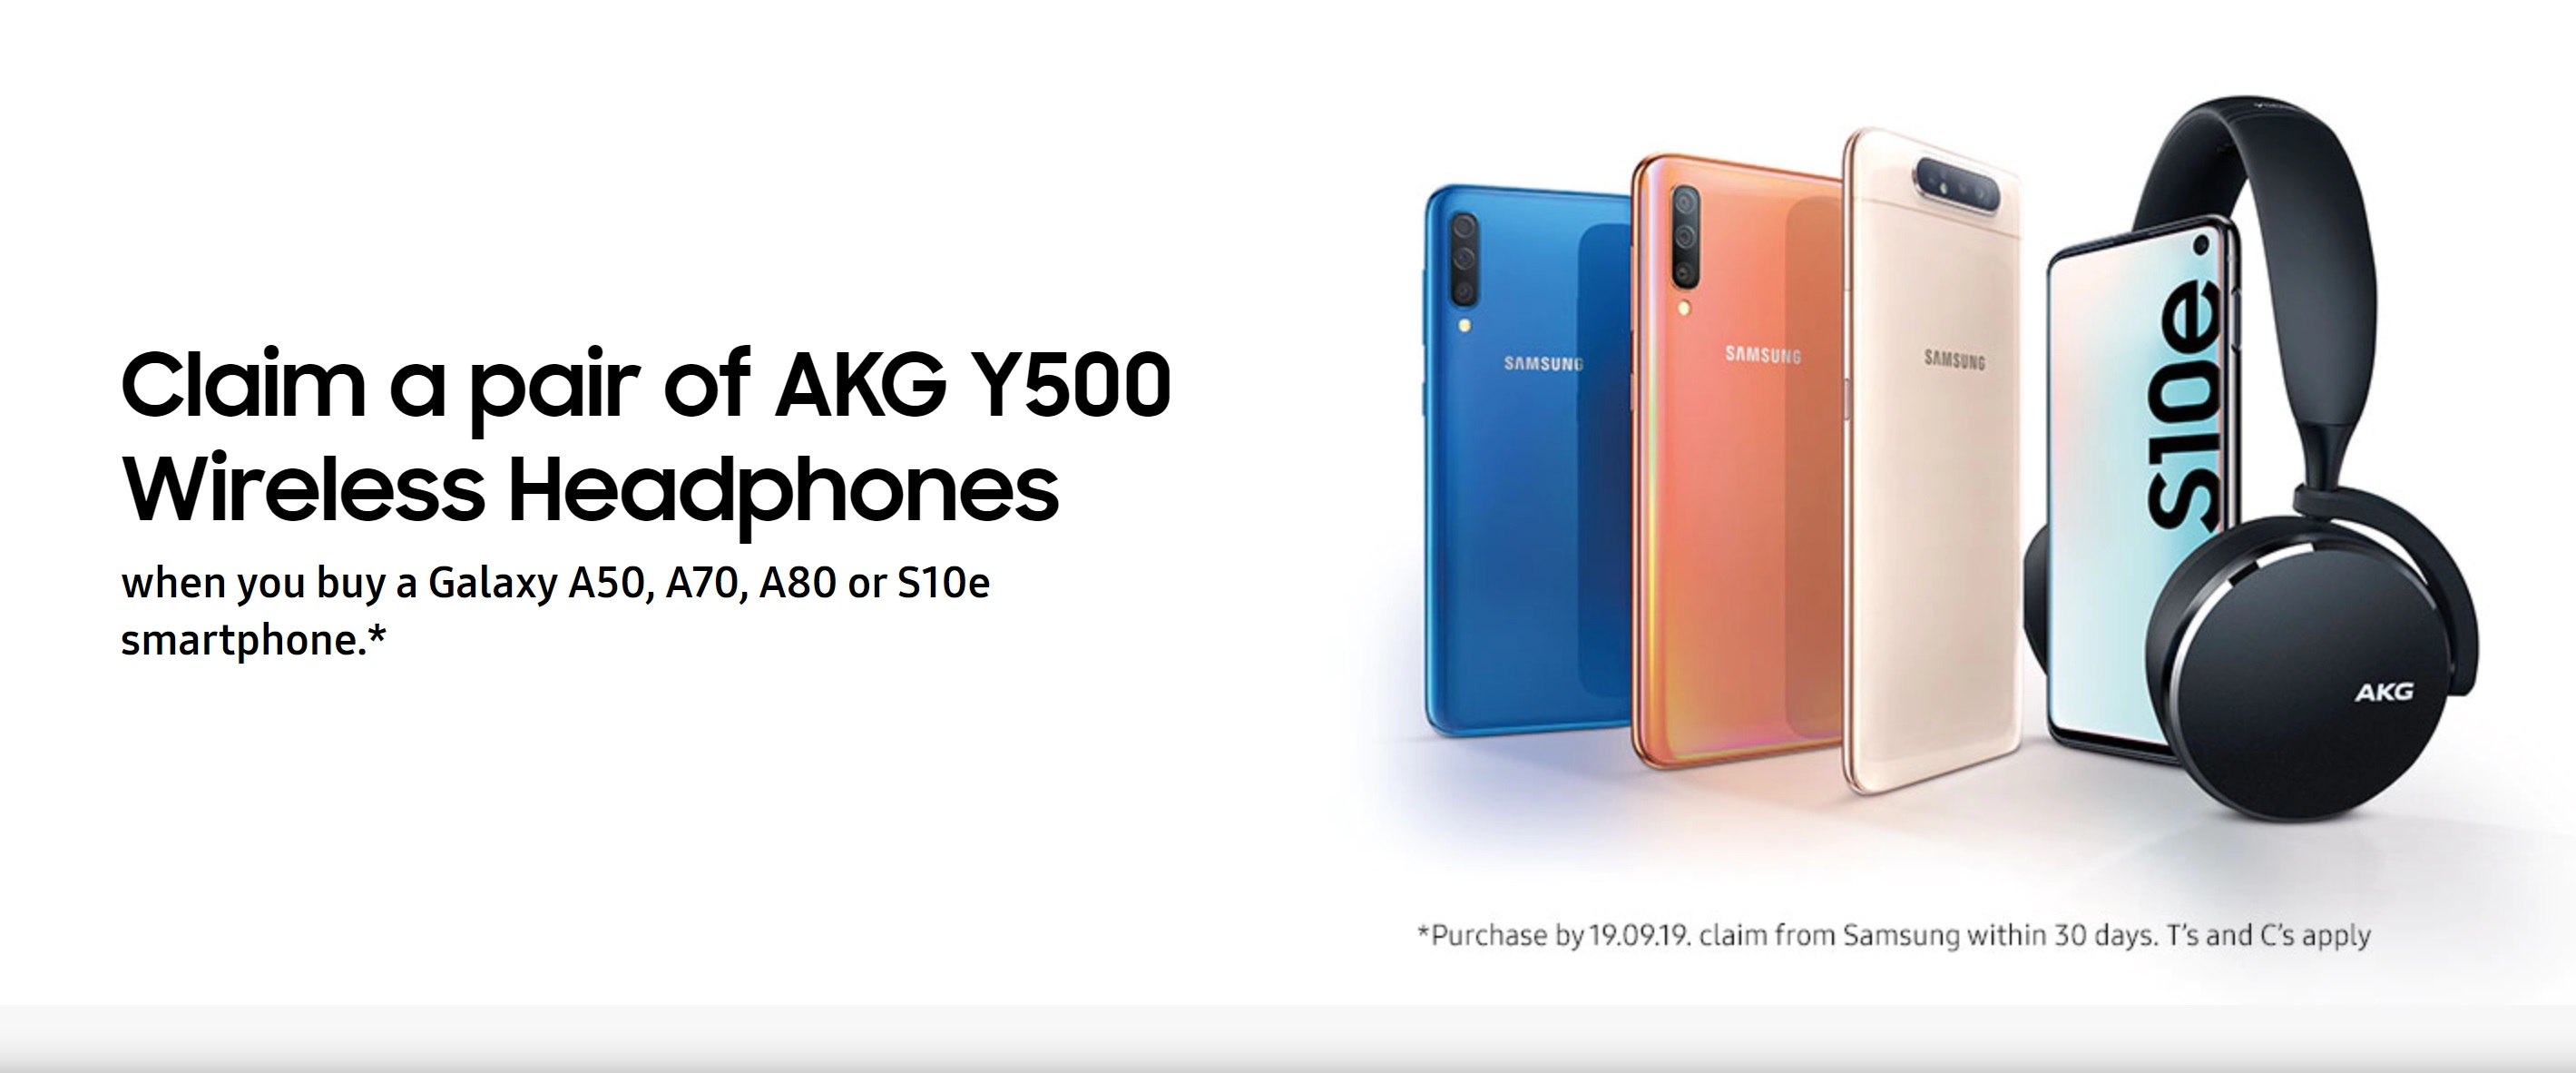 Claim Free AKG Wireless Headphones with Samsung S10e, A80, A70 and A50 contract deals